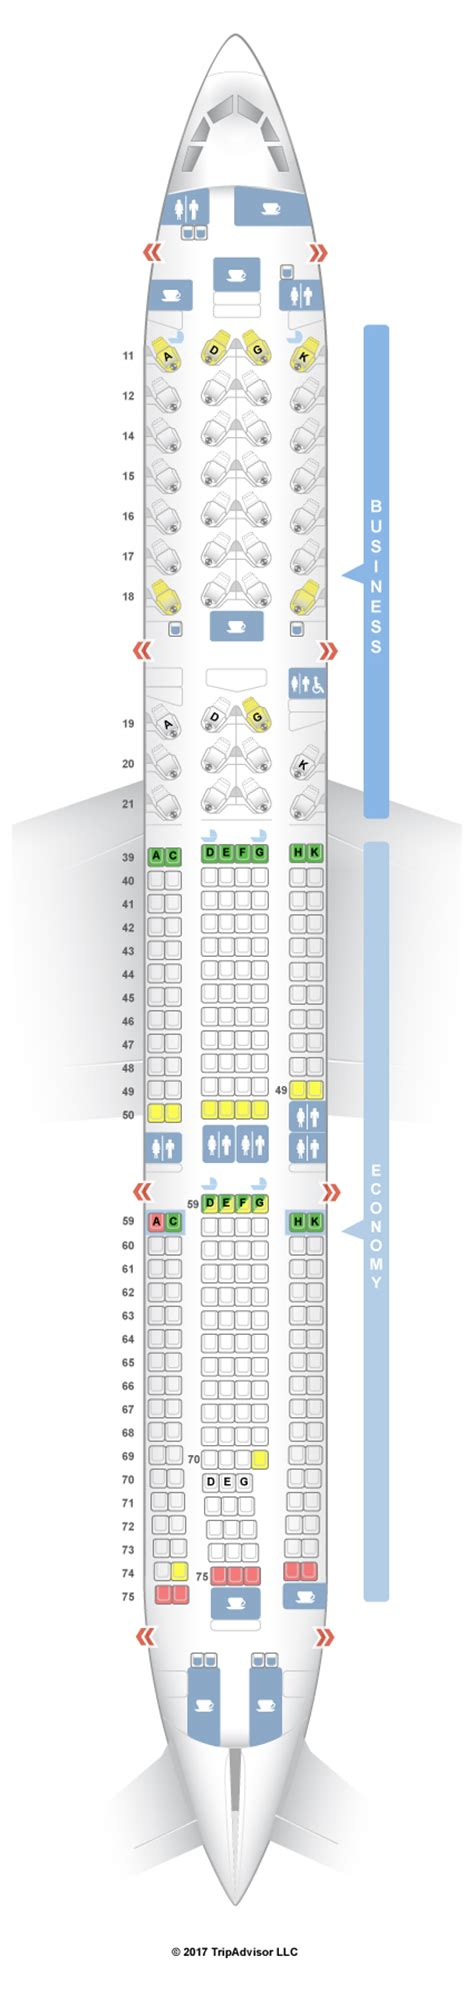 cathay pacific seat map seatguru seat map cathay pacific airbus a330 300 33e two